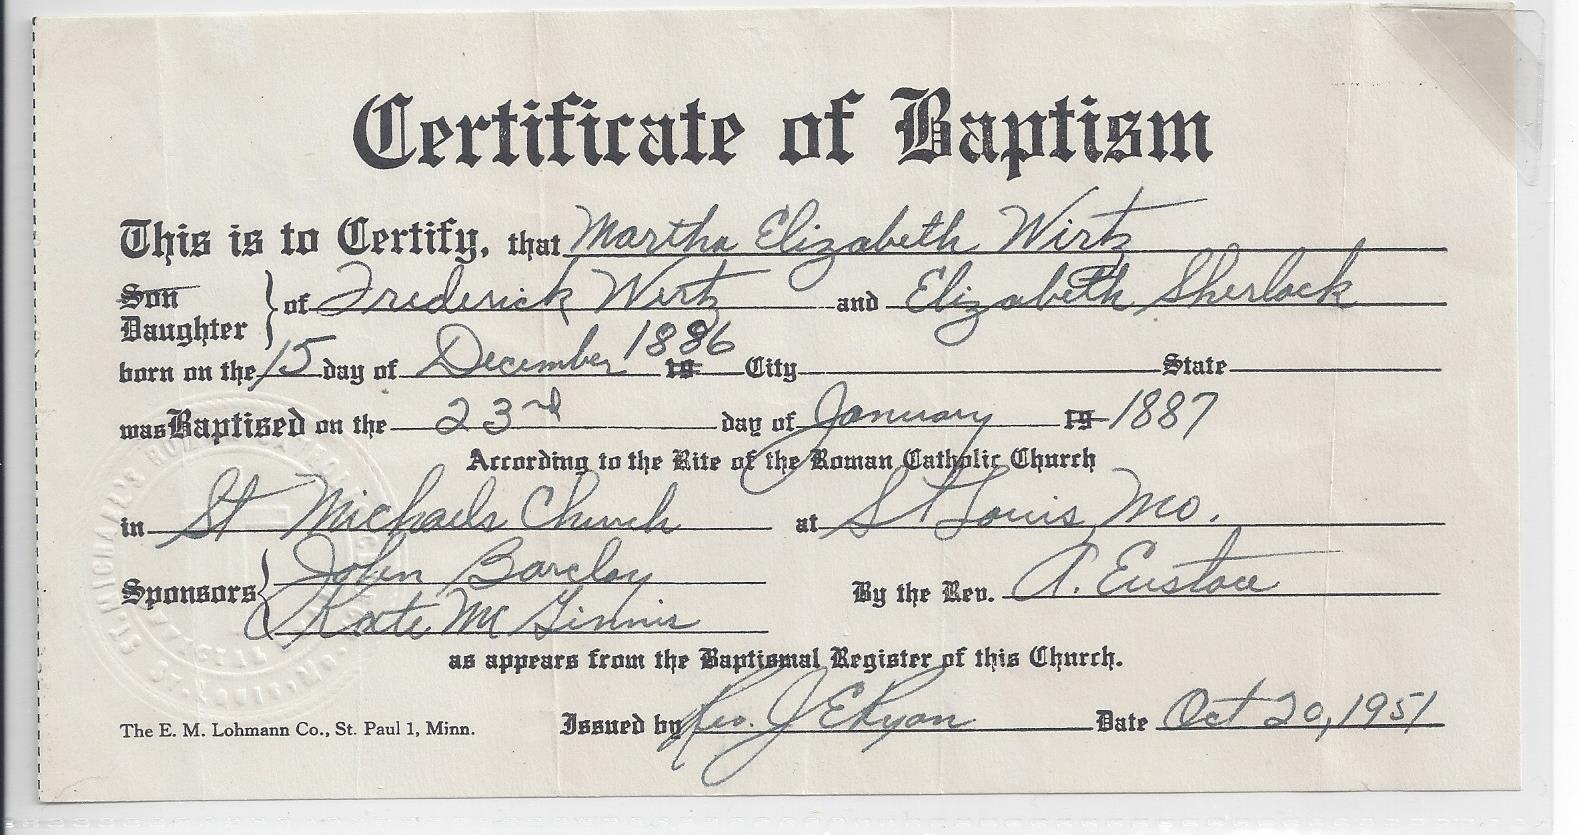 Wirtz family of prussia and st louis missouri the heritage lady baptism record of martha wirtz 1betcityfo Choice Image